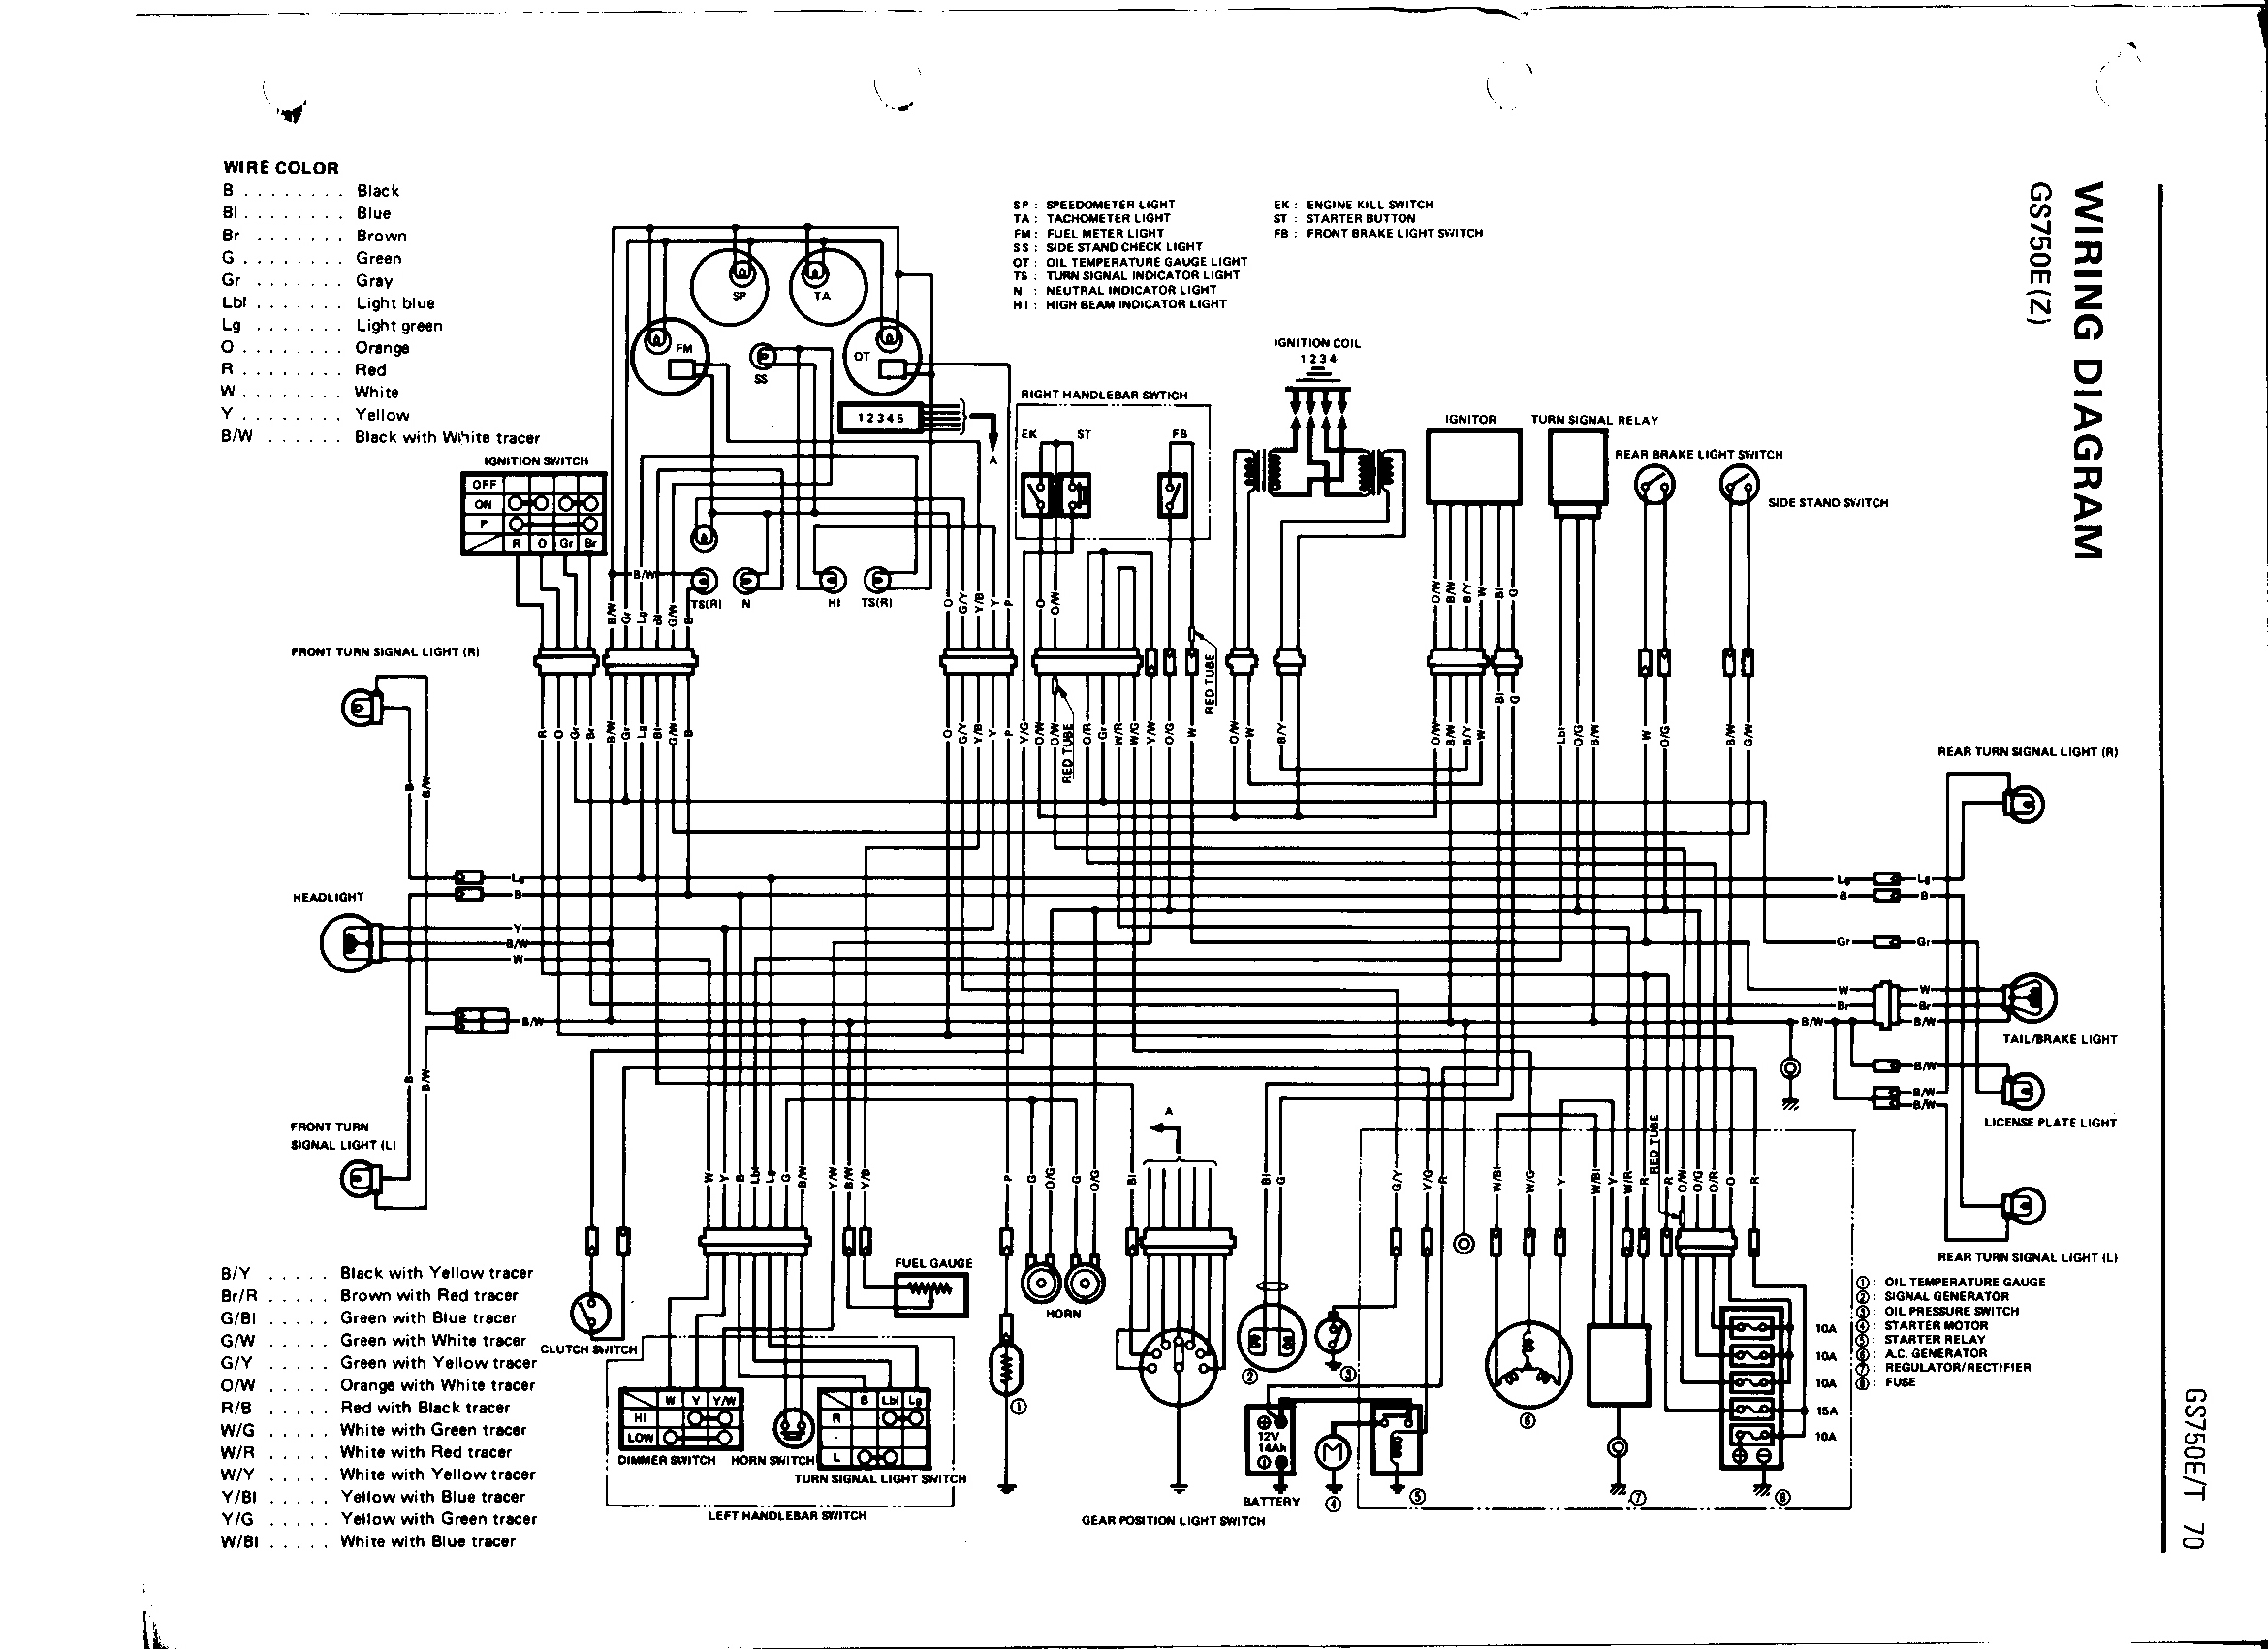 Y2K Bike Wiring Diagrams